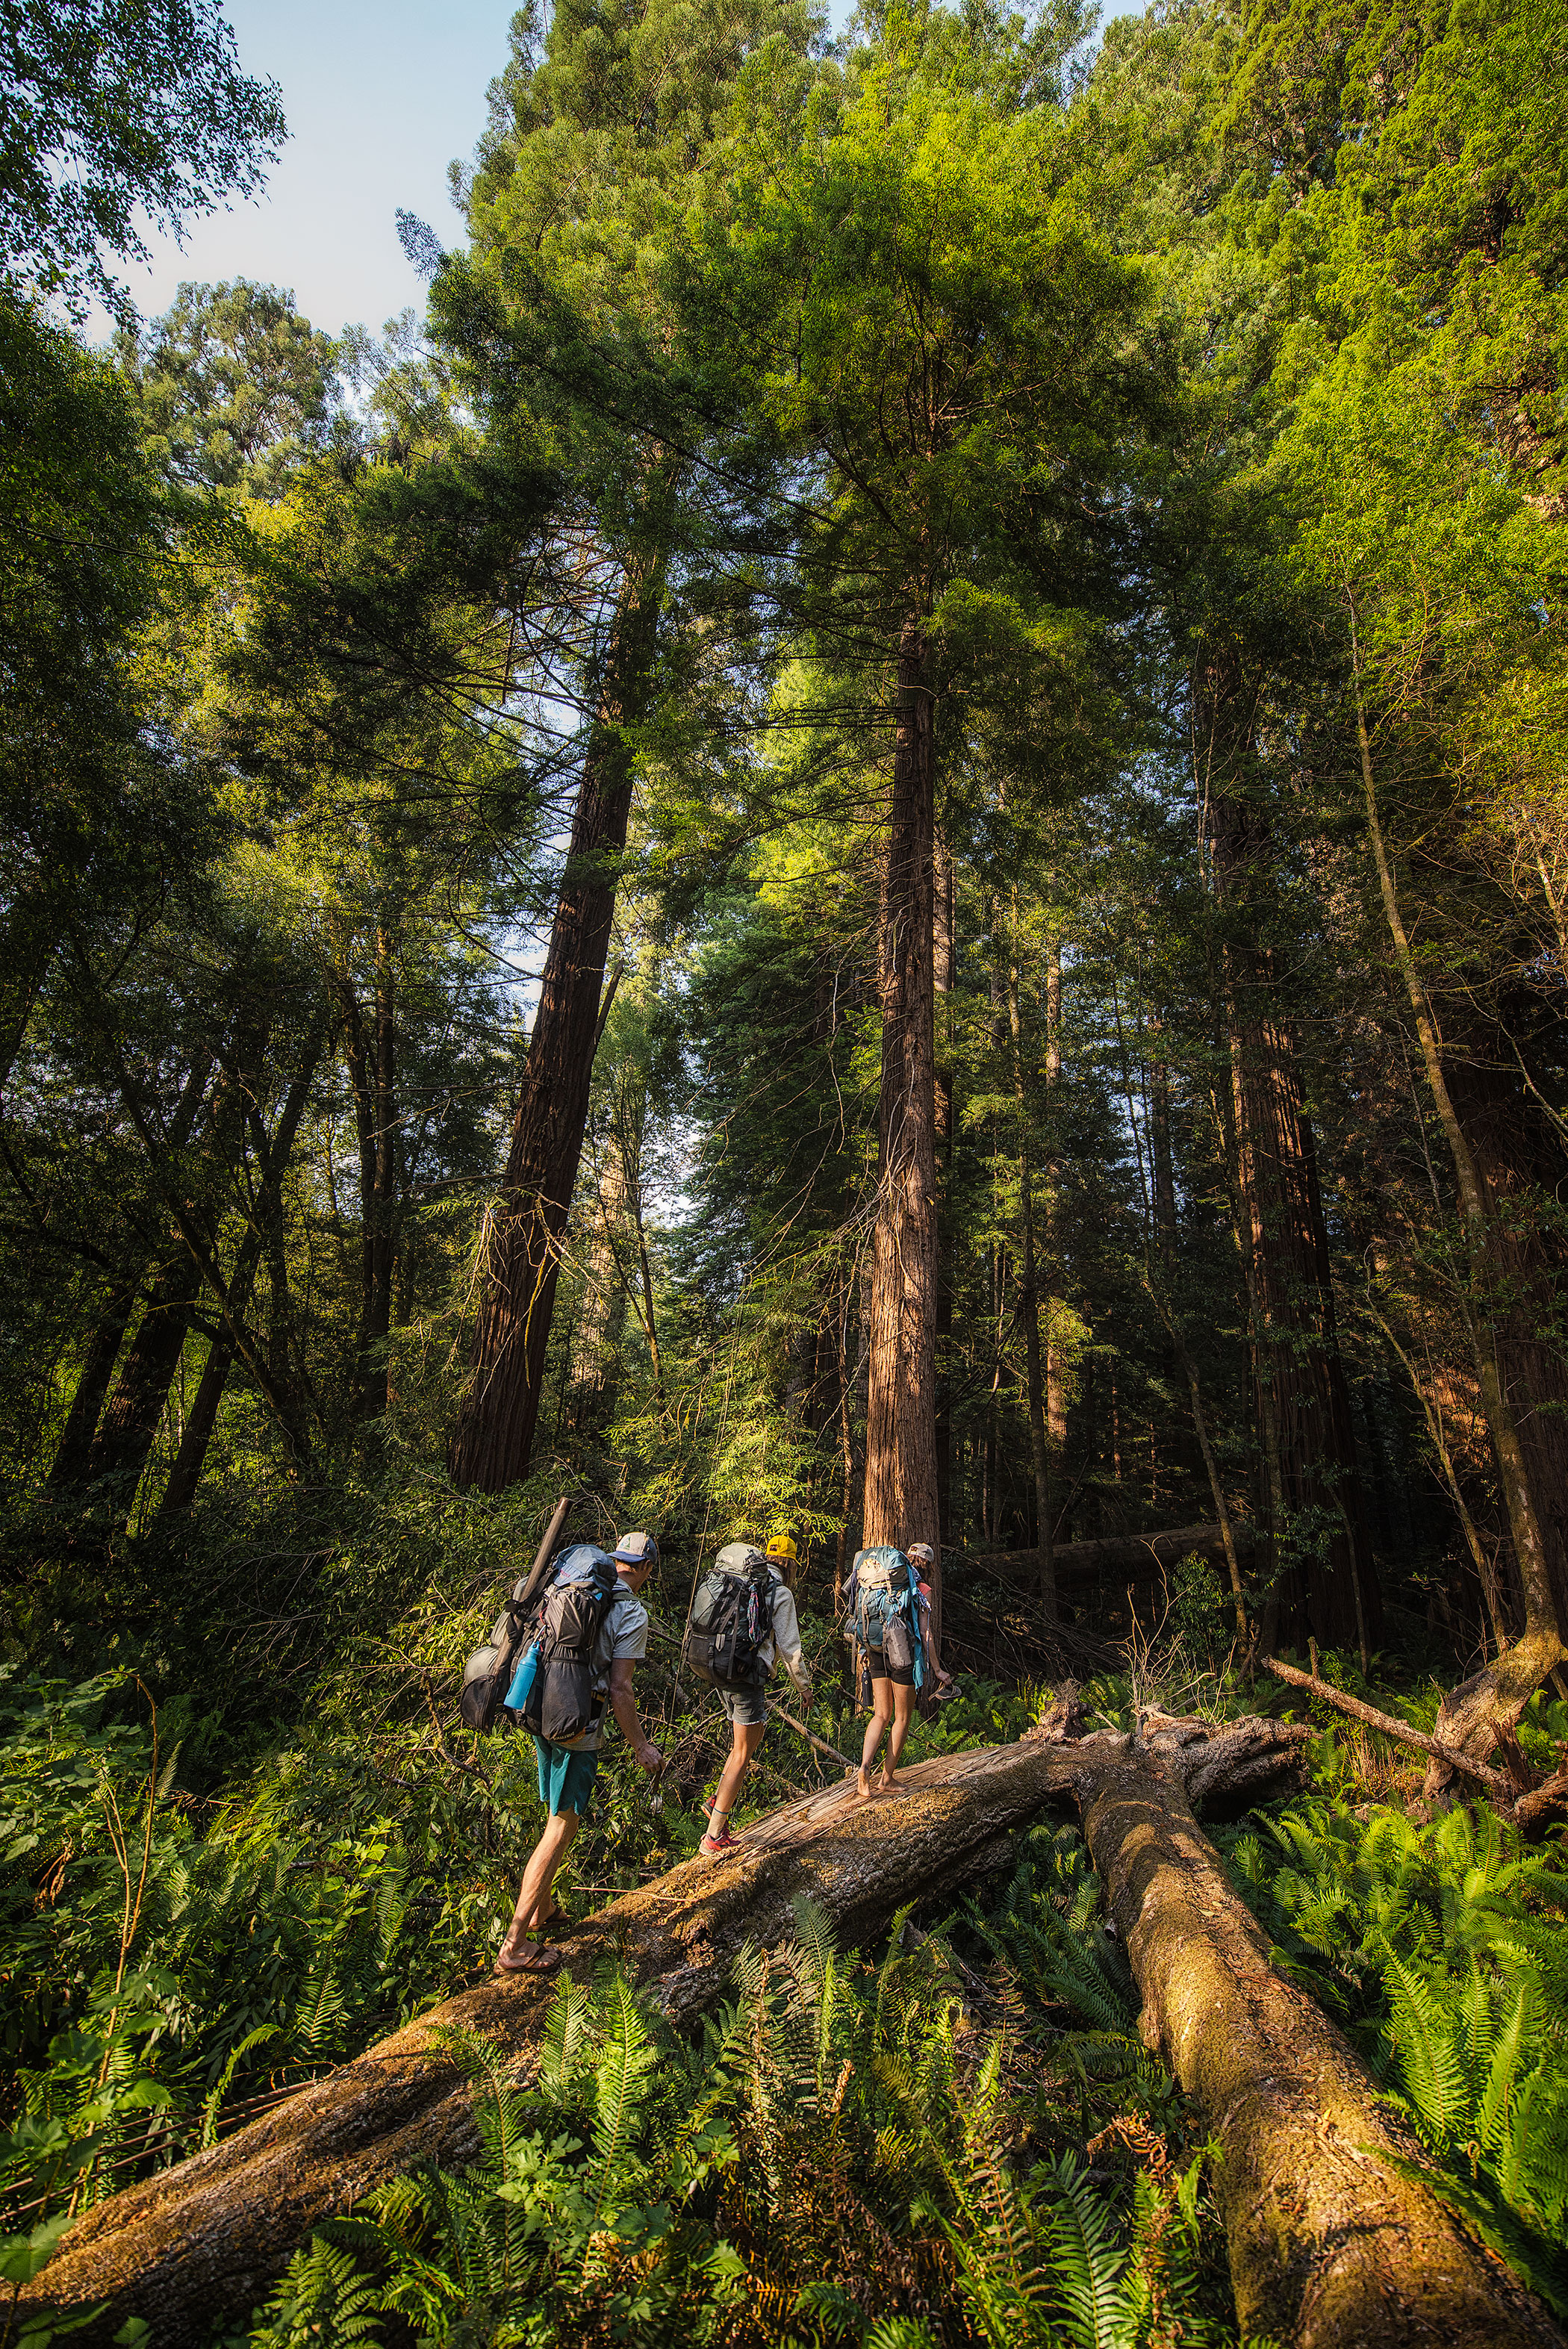 austin-trigg-redwood-water-bottle-hiking-tall-tree-grove-forest-camping-backpacking-california.jpg